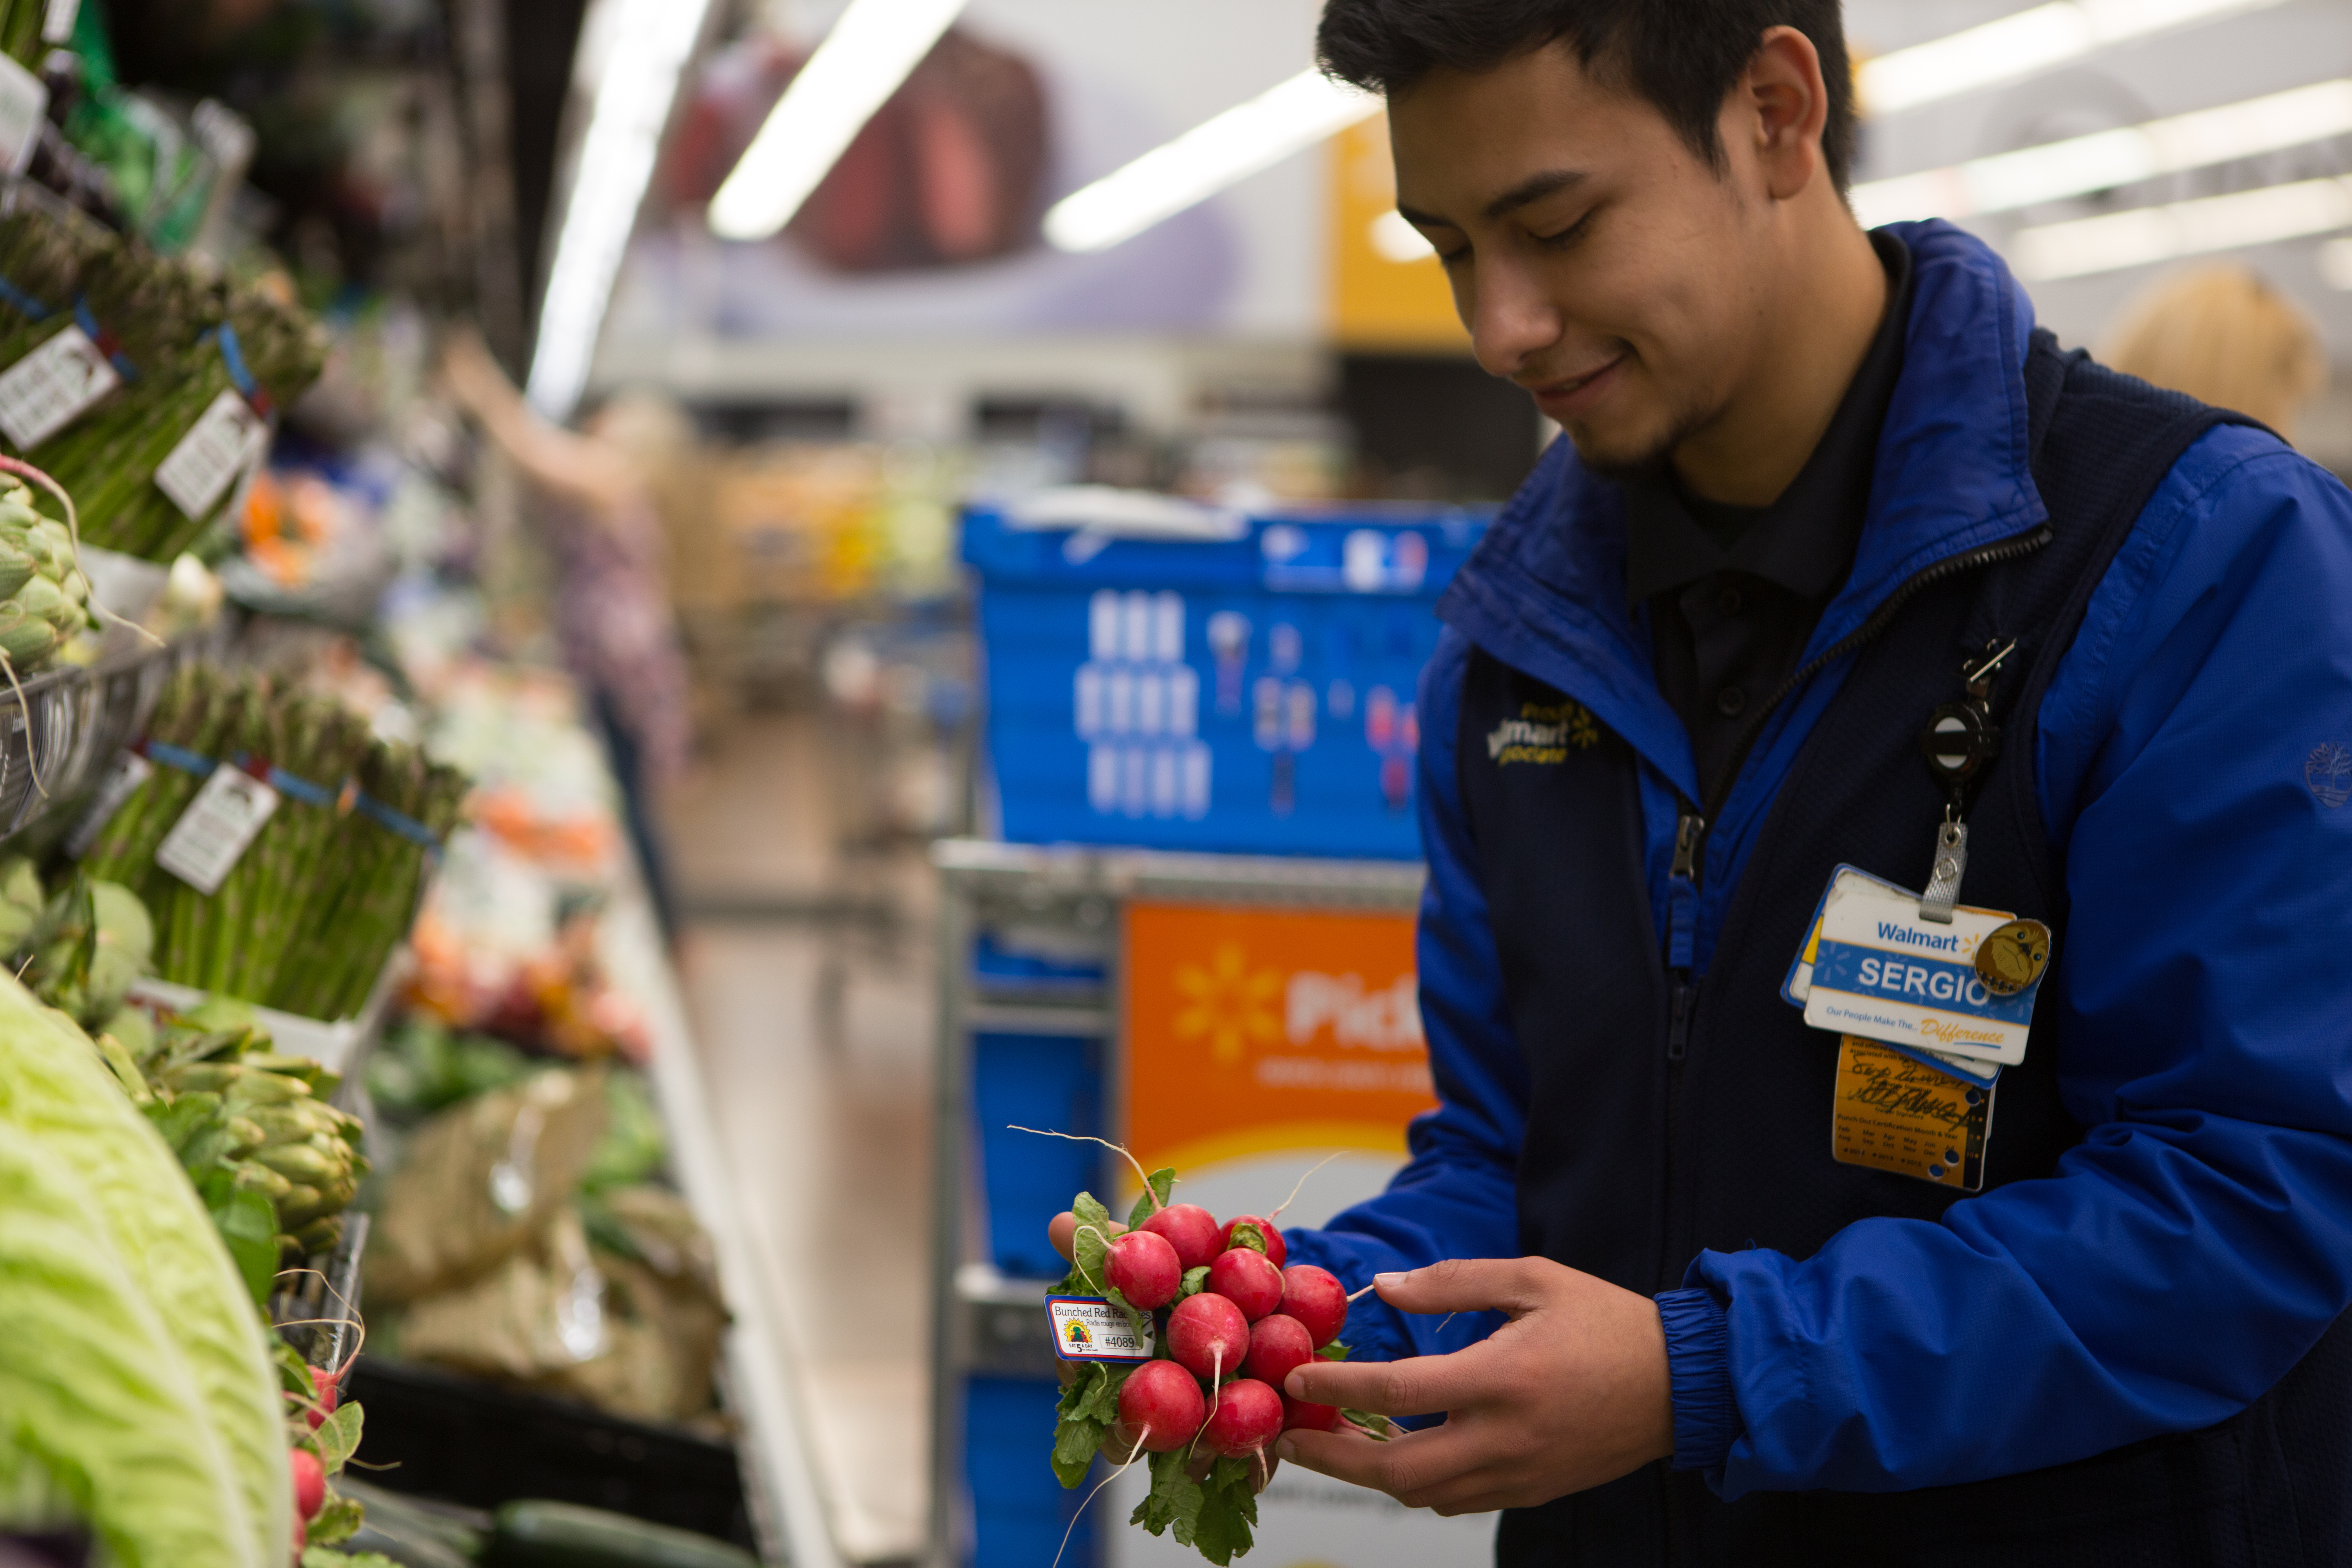 Walmart personal shopper selects radishes